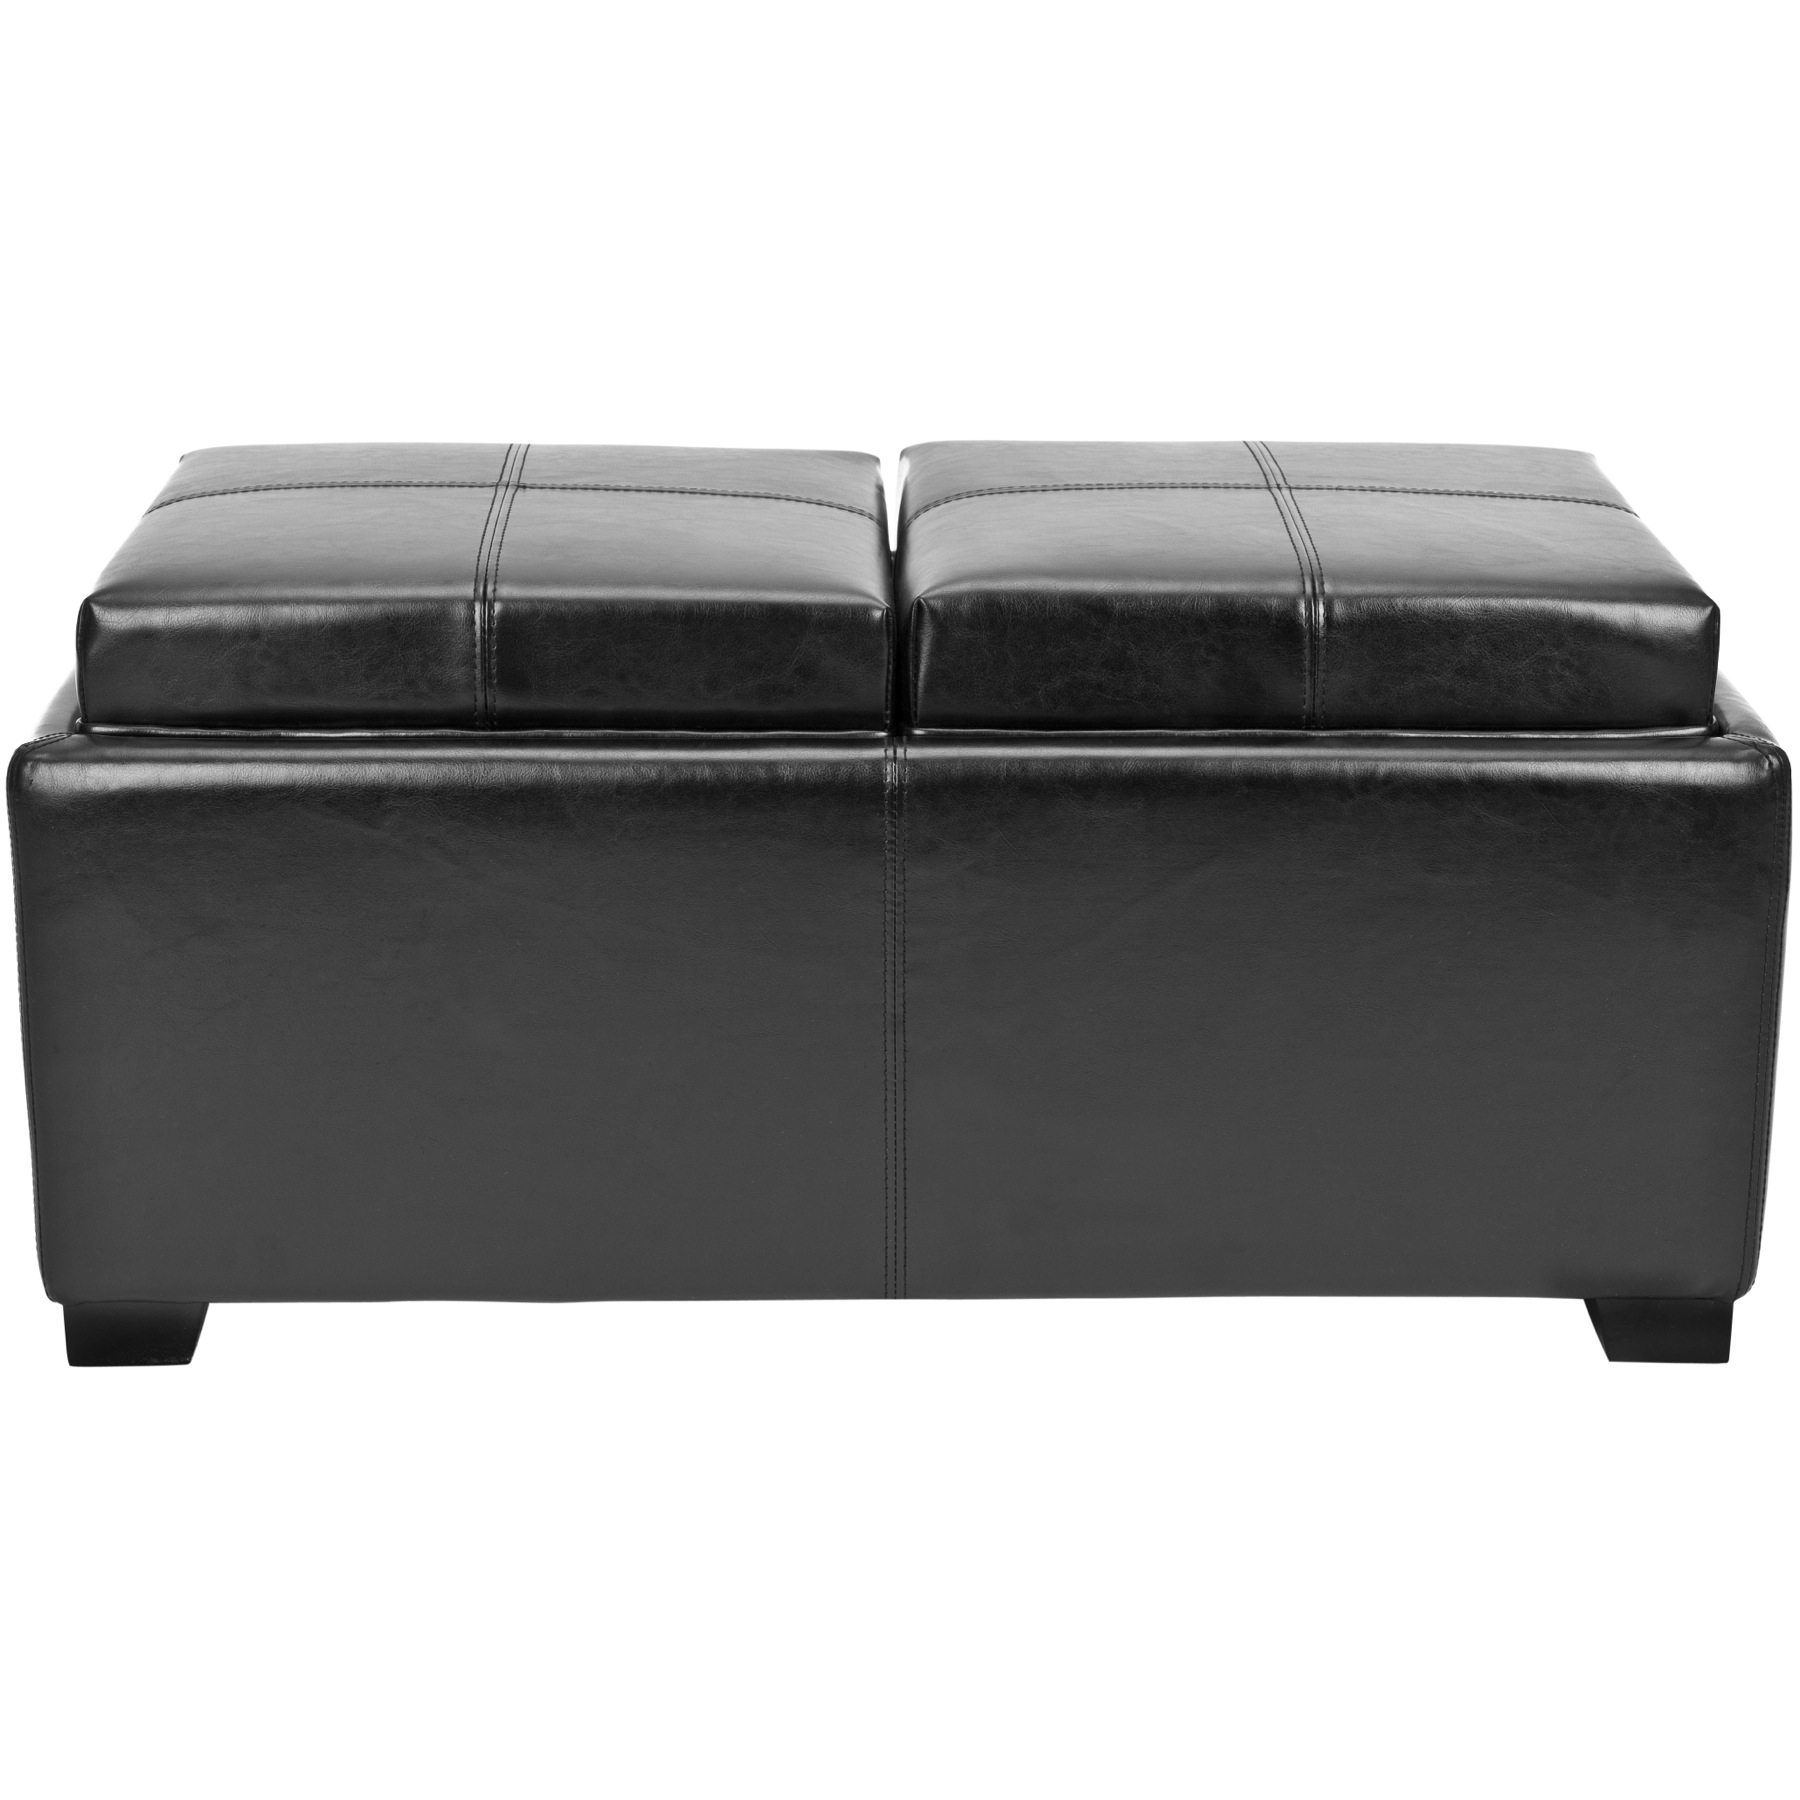 Double Chair With Ottoman Safavieh Hudson Collection Harrison Double Tray Ottoman